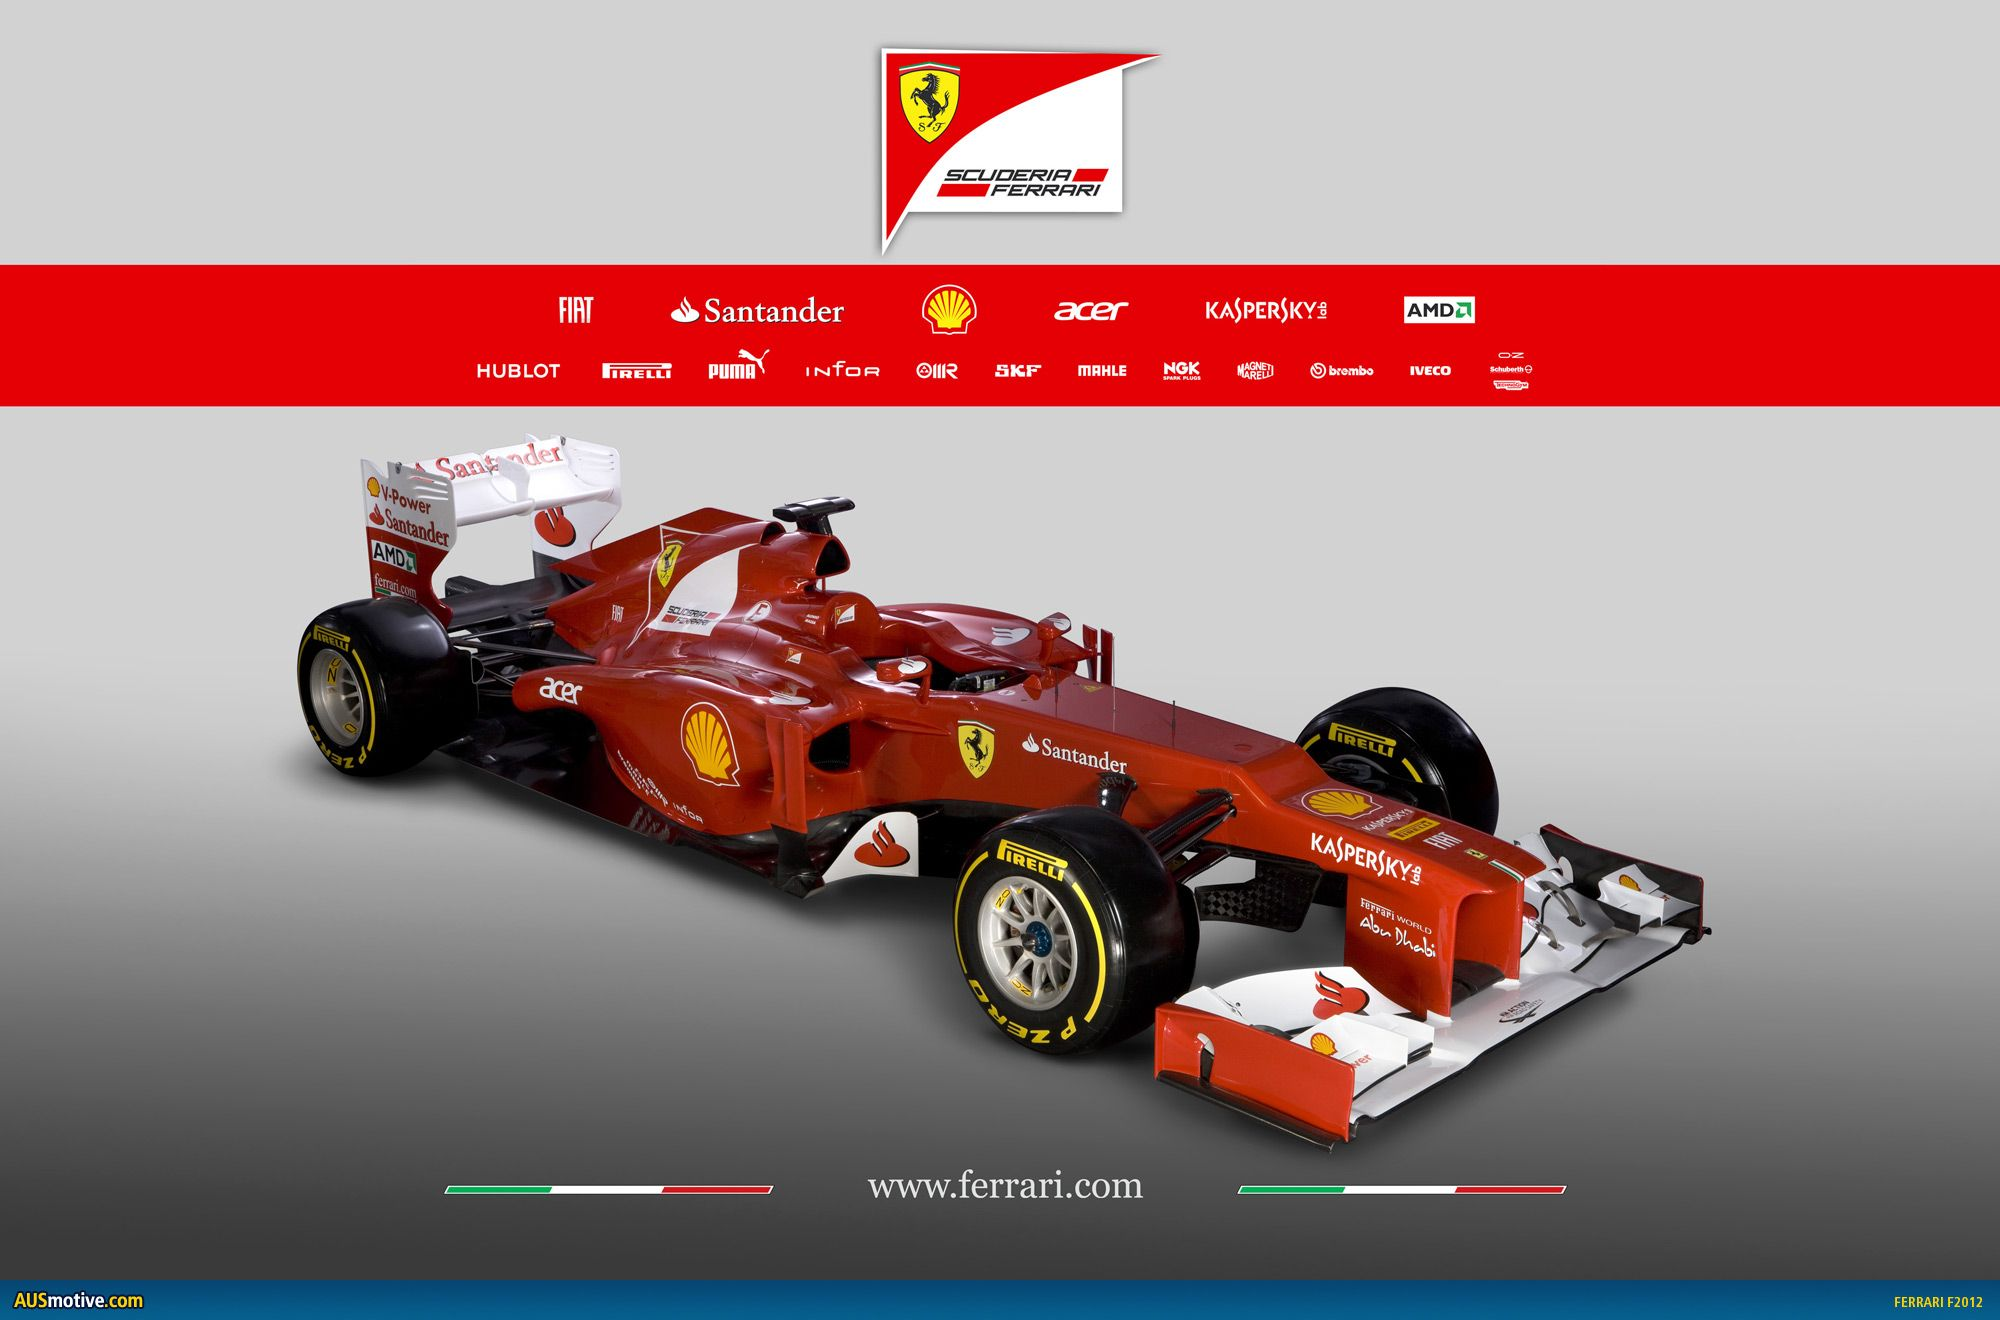 Ferrari 2012 F1 Car The Deceleration And The Retardation Experience By The F1 Driver When He Pushes The Brakes Can Be Felt Ferrari F1 Ferrari Car Racing